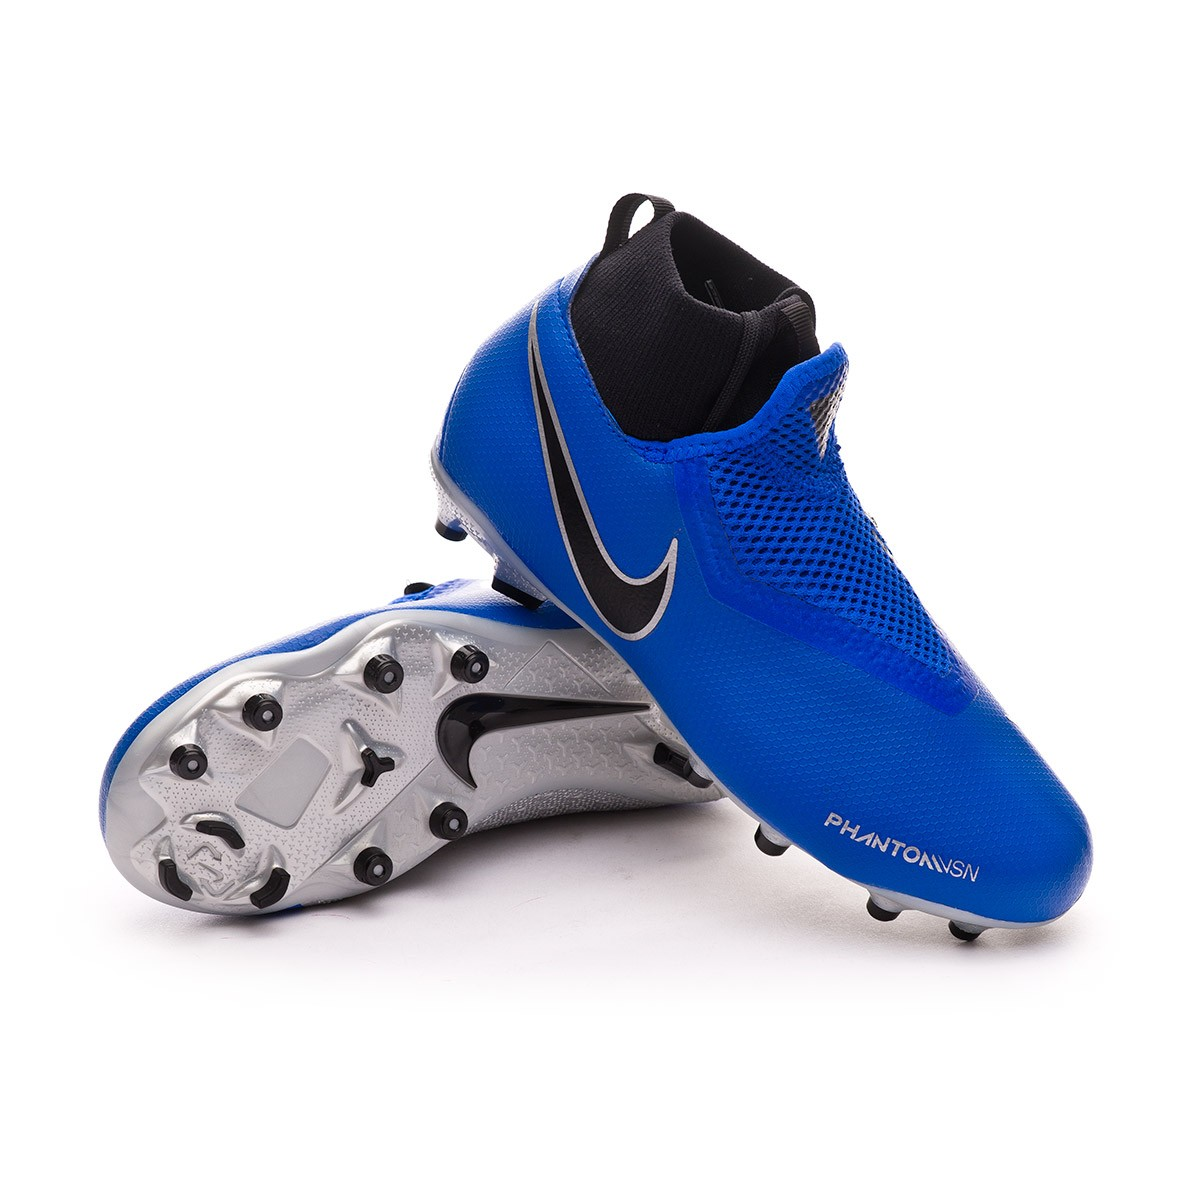 ead5cef86 Football Boots Nike Kids Phantom Vision Academy DF FG/MG Racer blue ...